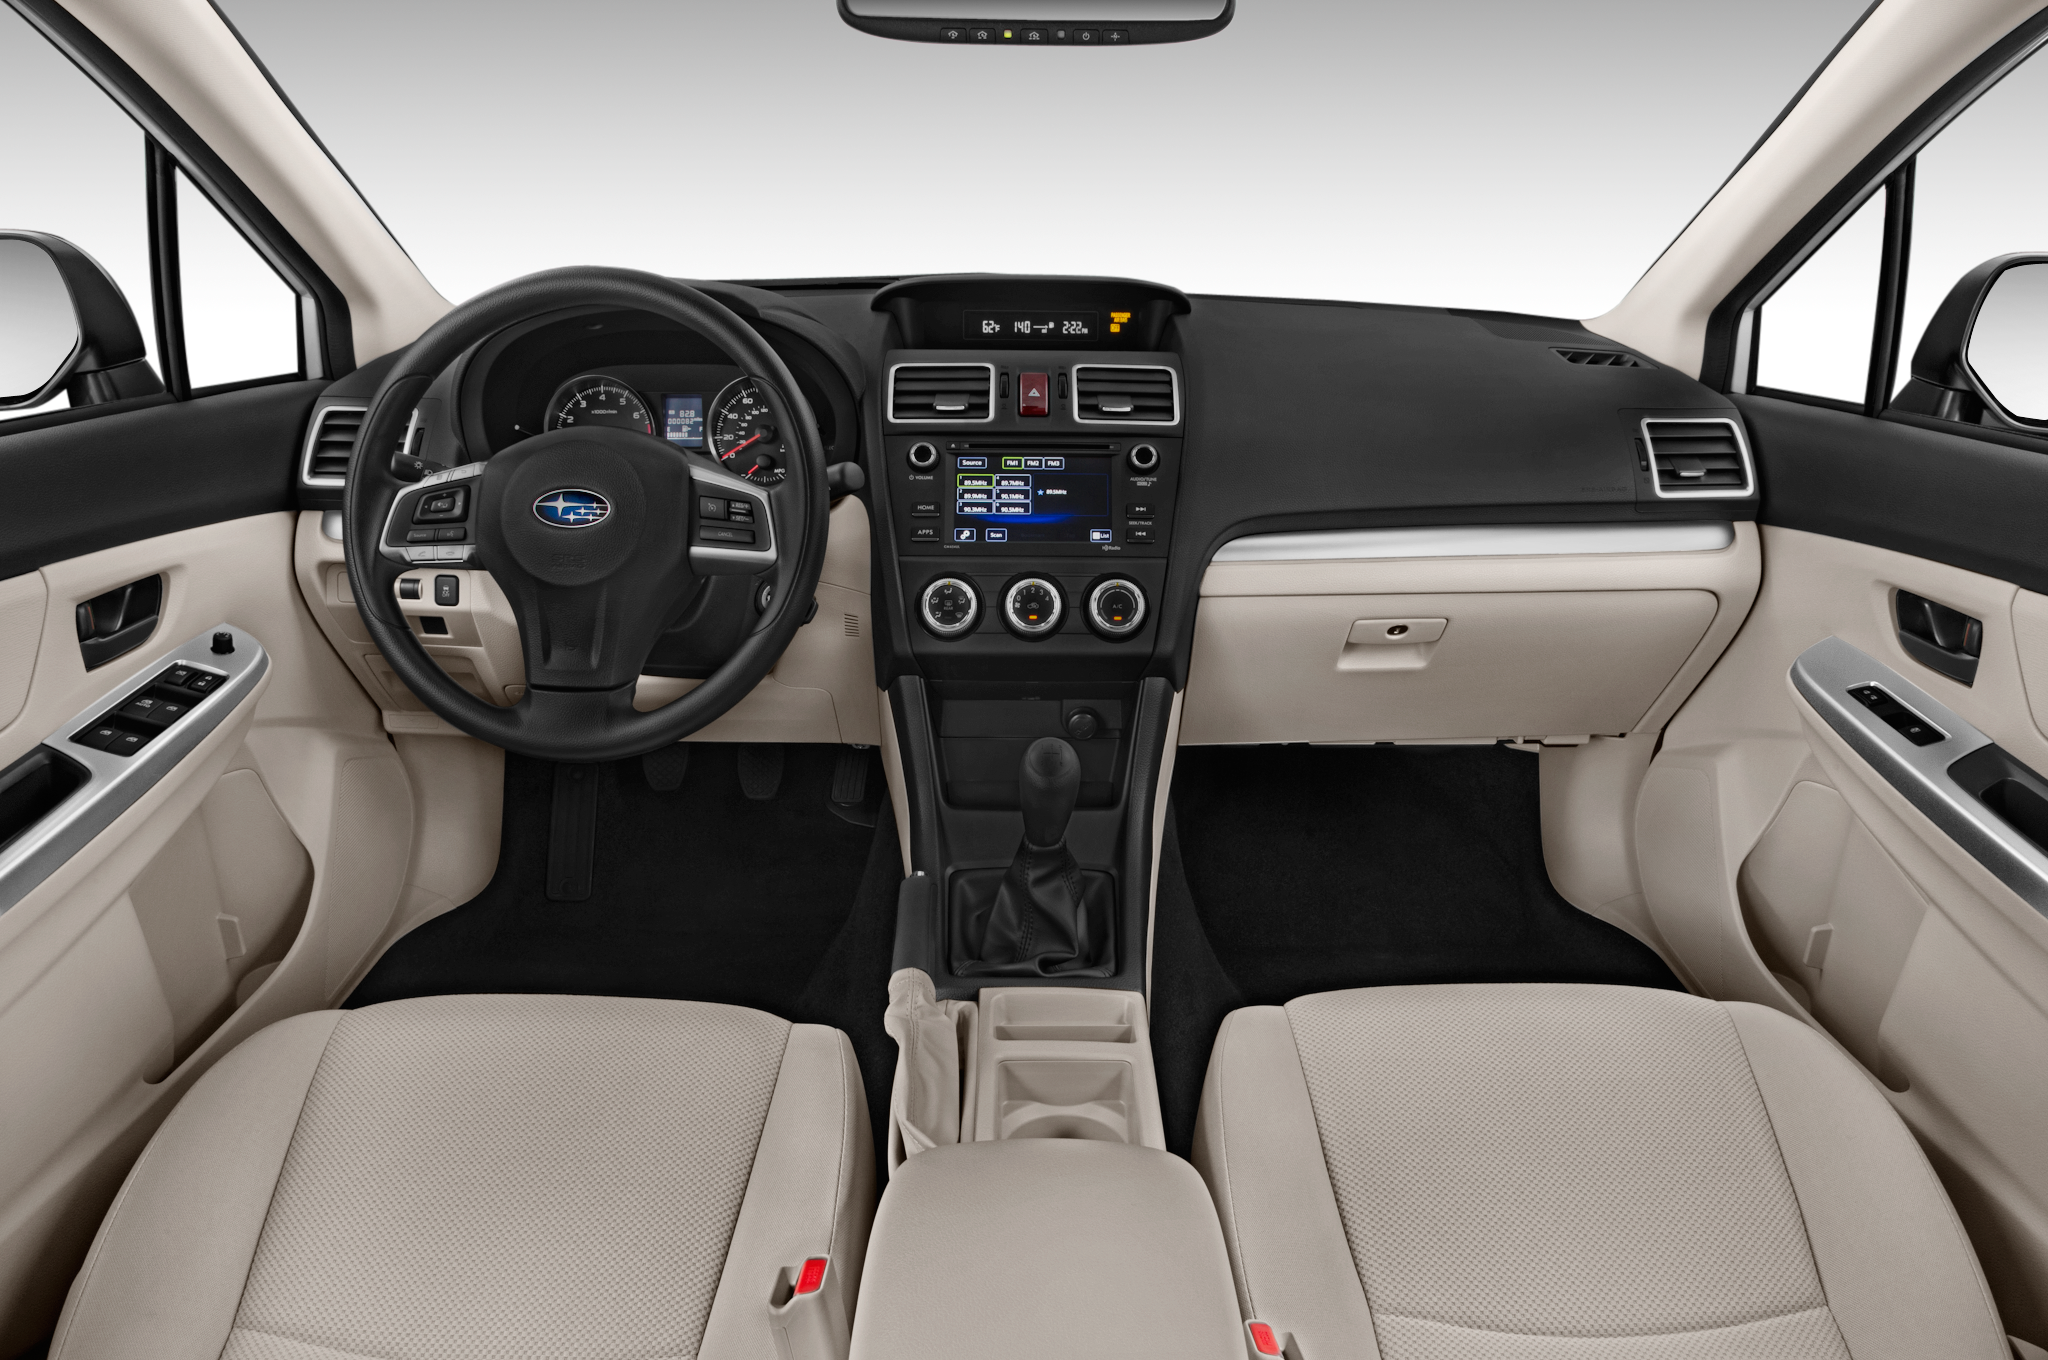 2015 subaru impreza refreshed with new features improved mpg. Black Bedroom Furniture Sets. Home Design Ideas